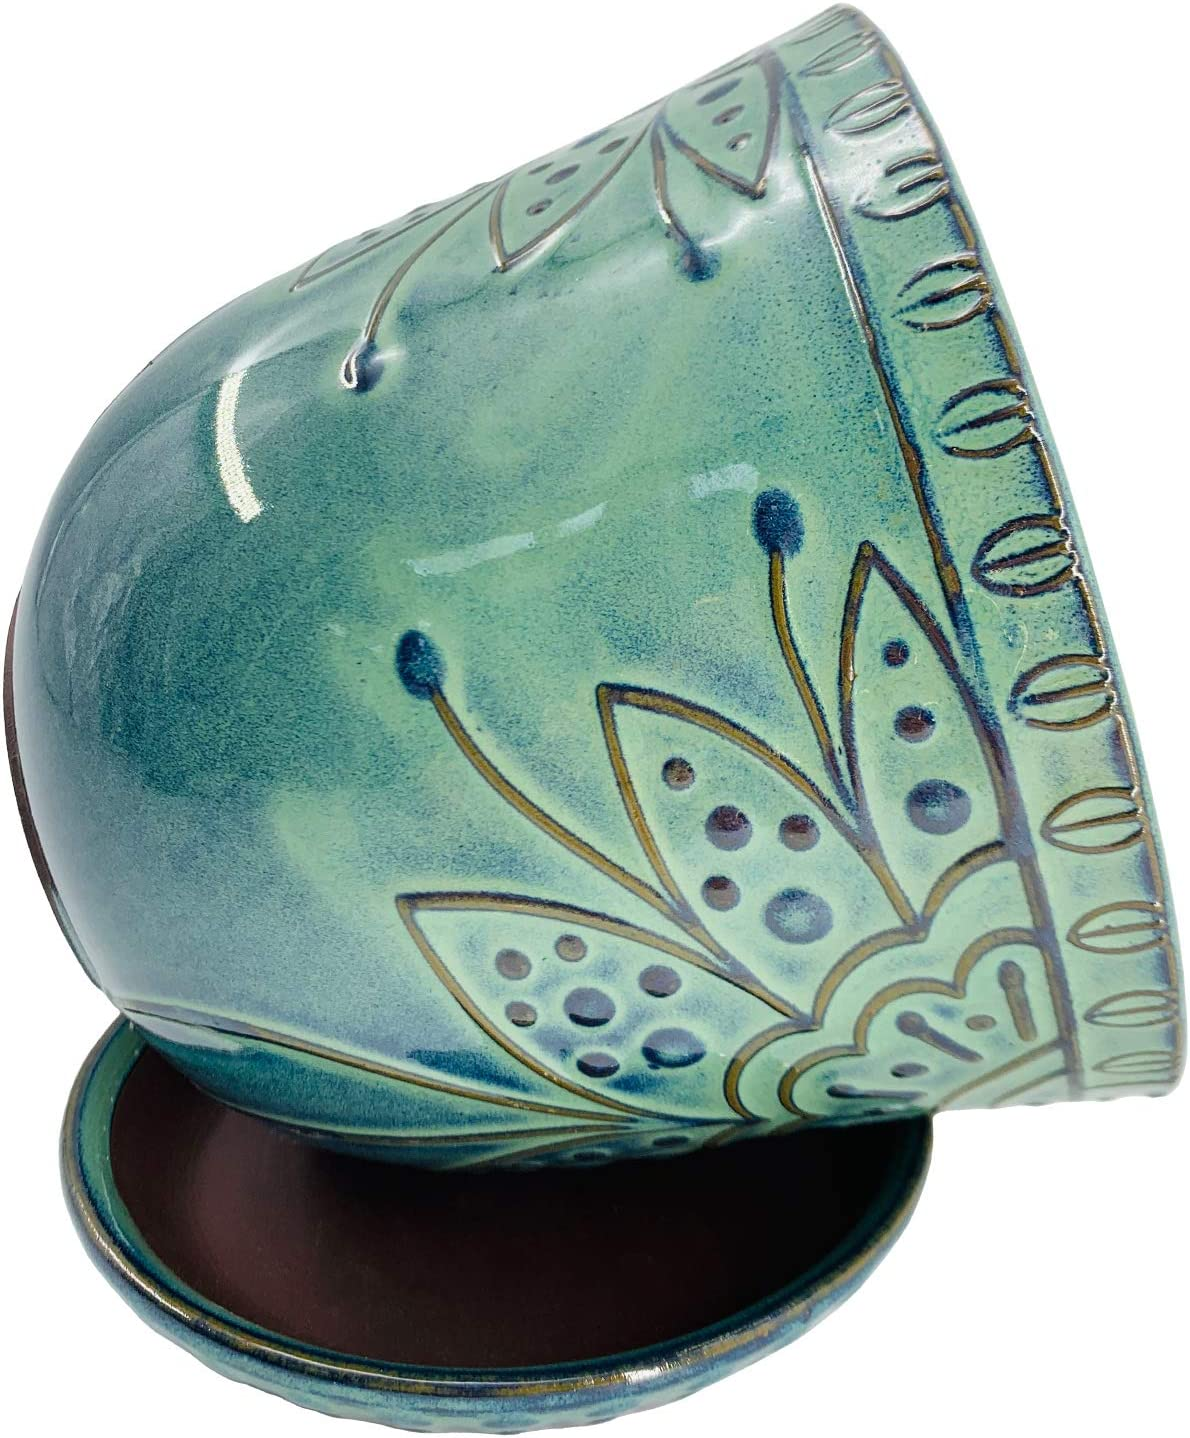 Indoor-Outdoor Large Round Succulent Orchid Pot Shrimp Green Gepege 6 Inch Beaded Ceramic Planter Set of 2 with Drainage Hole and Saucer for Plants